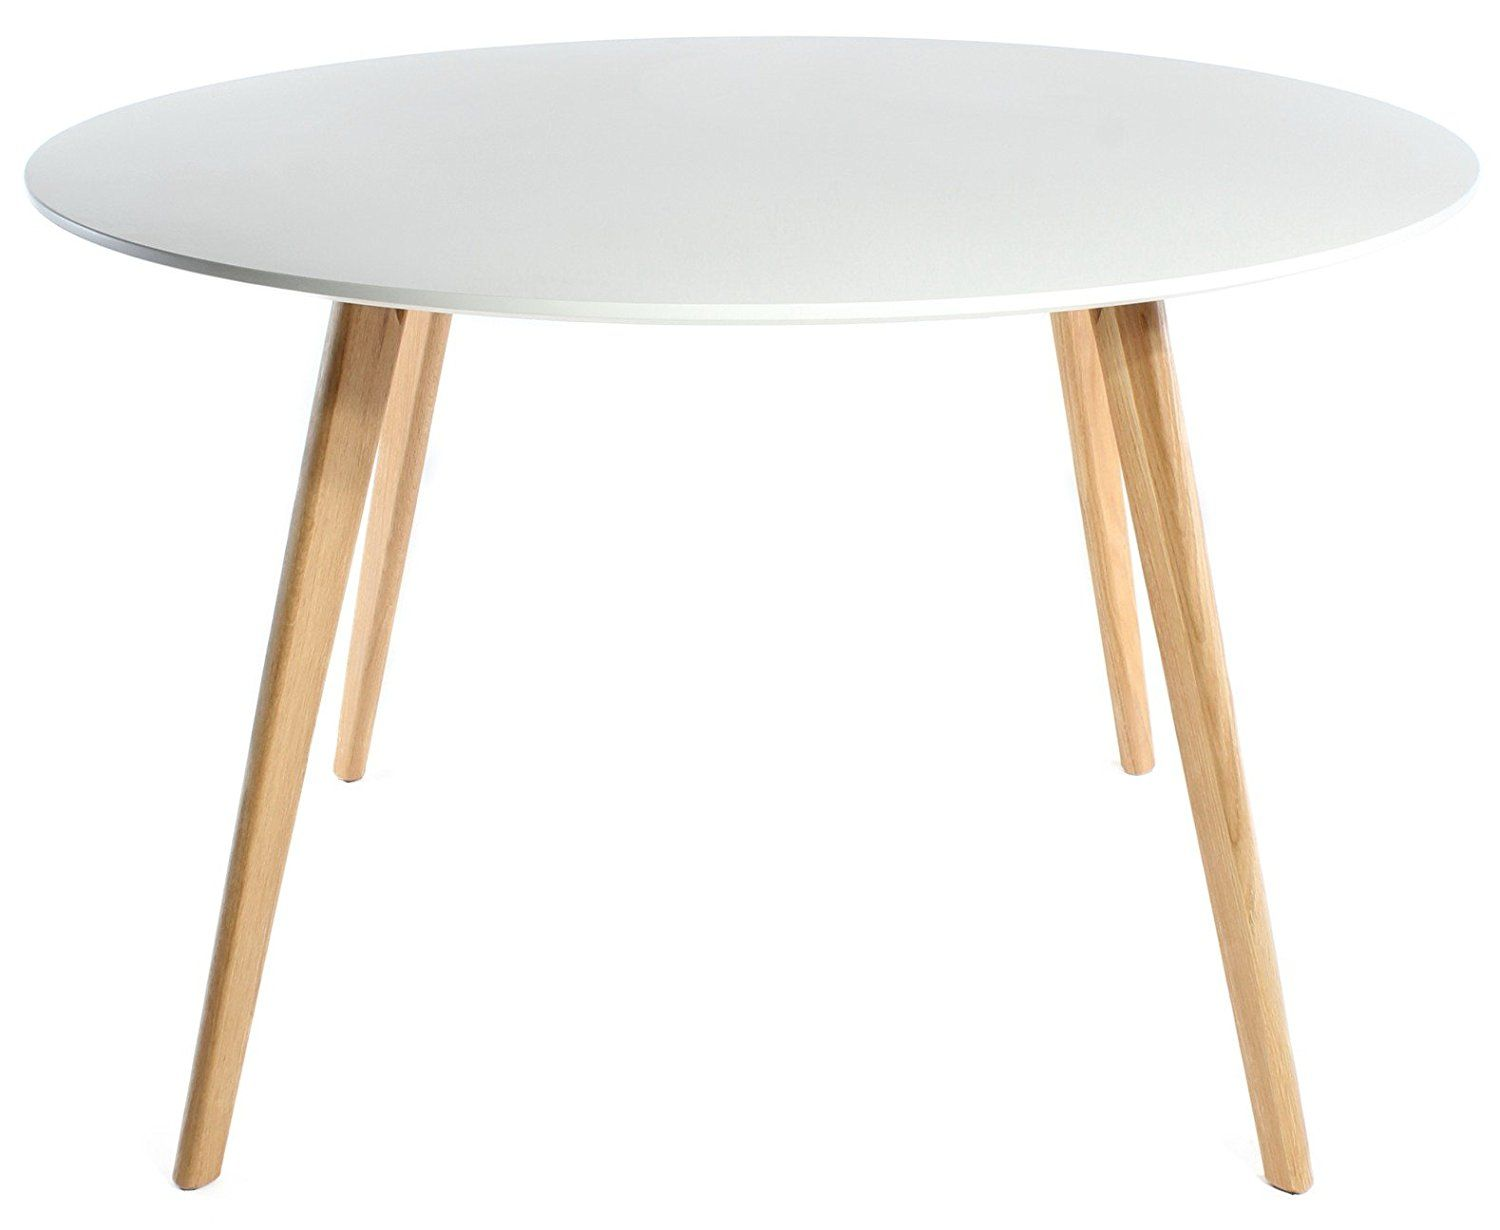 Charles Jacobs Round Retro Lounge Kitchen Dining Table With Solid Oak Wood  Legs And White Matt